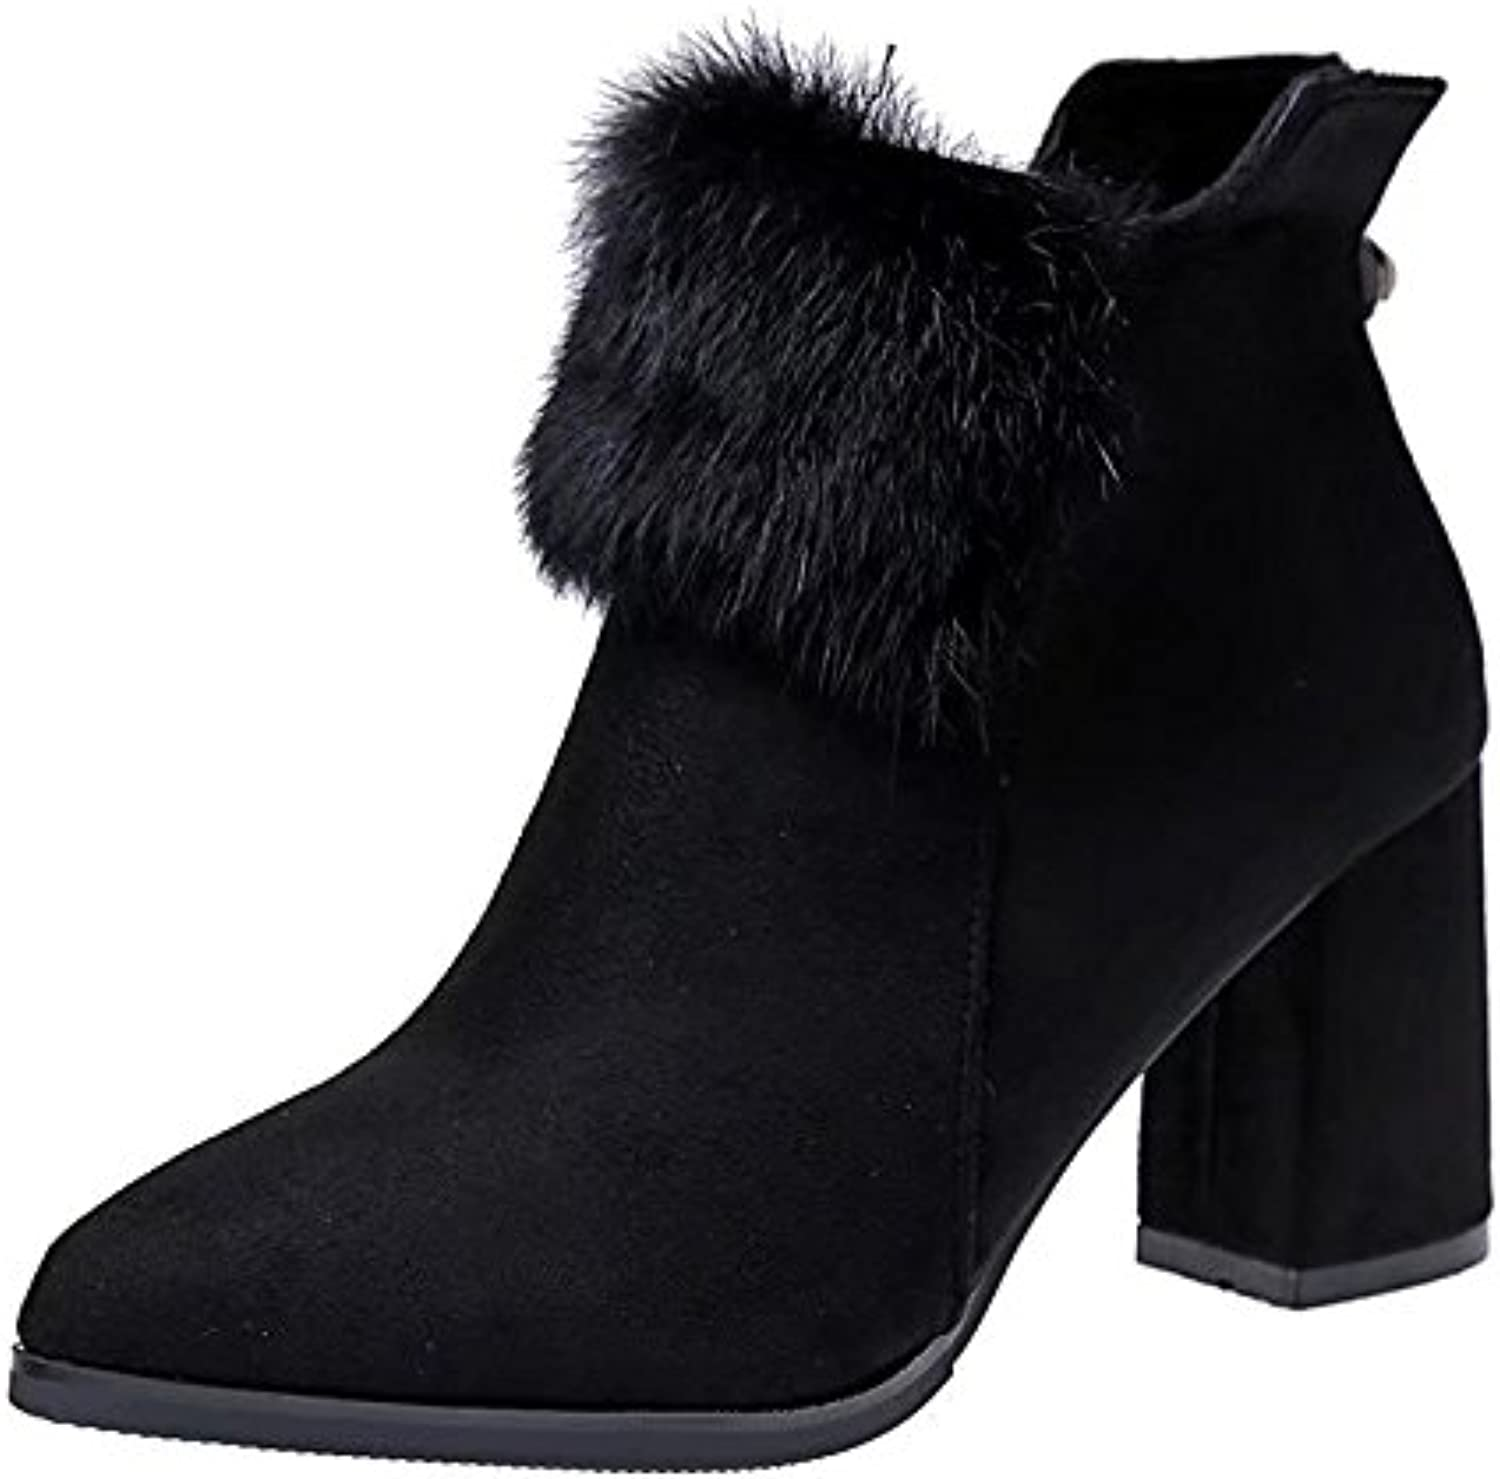 WYMBS Women's shoes Rough with Short Boots Autumn Winter Martin Boots Pointed Non-Slip High-Heeled